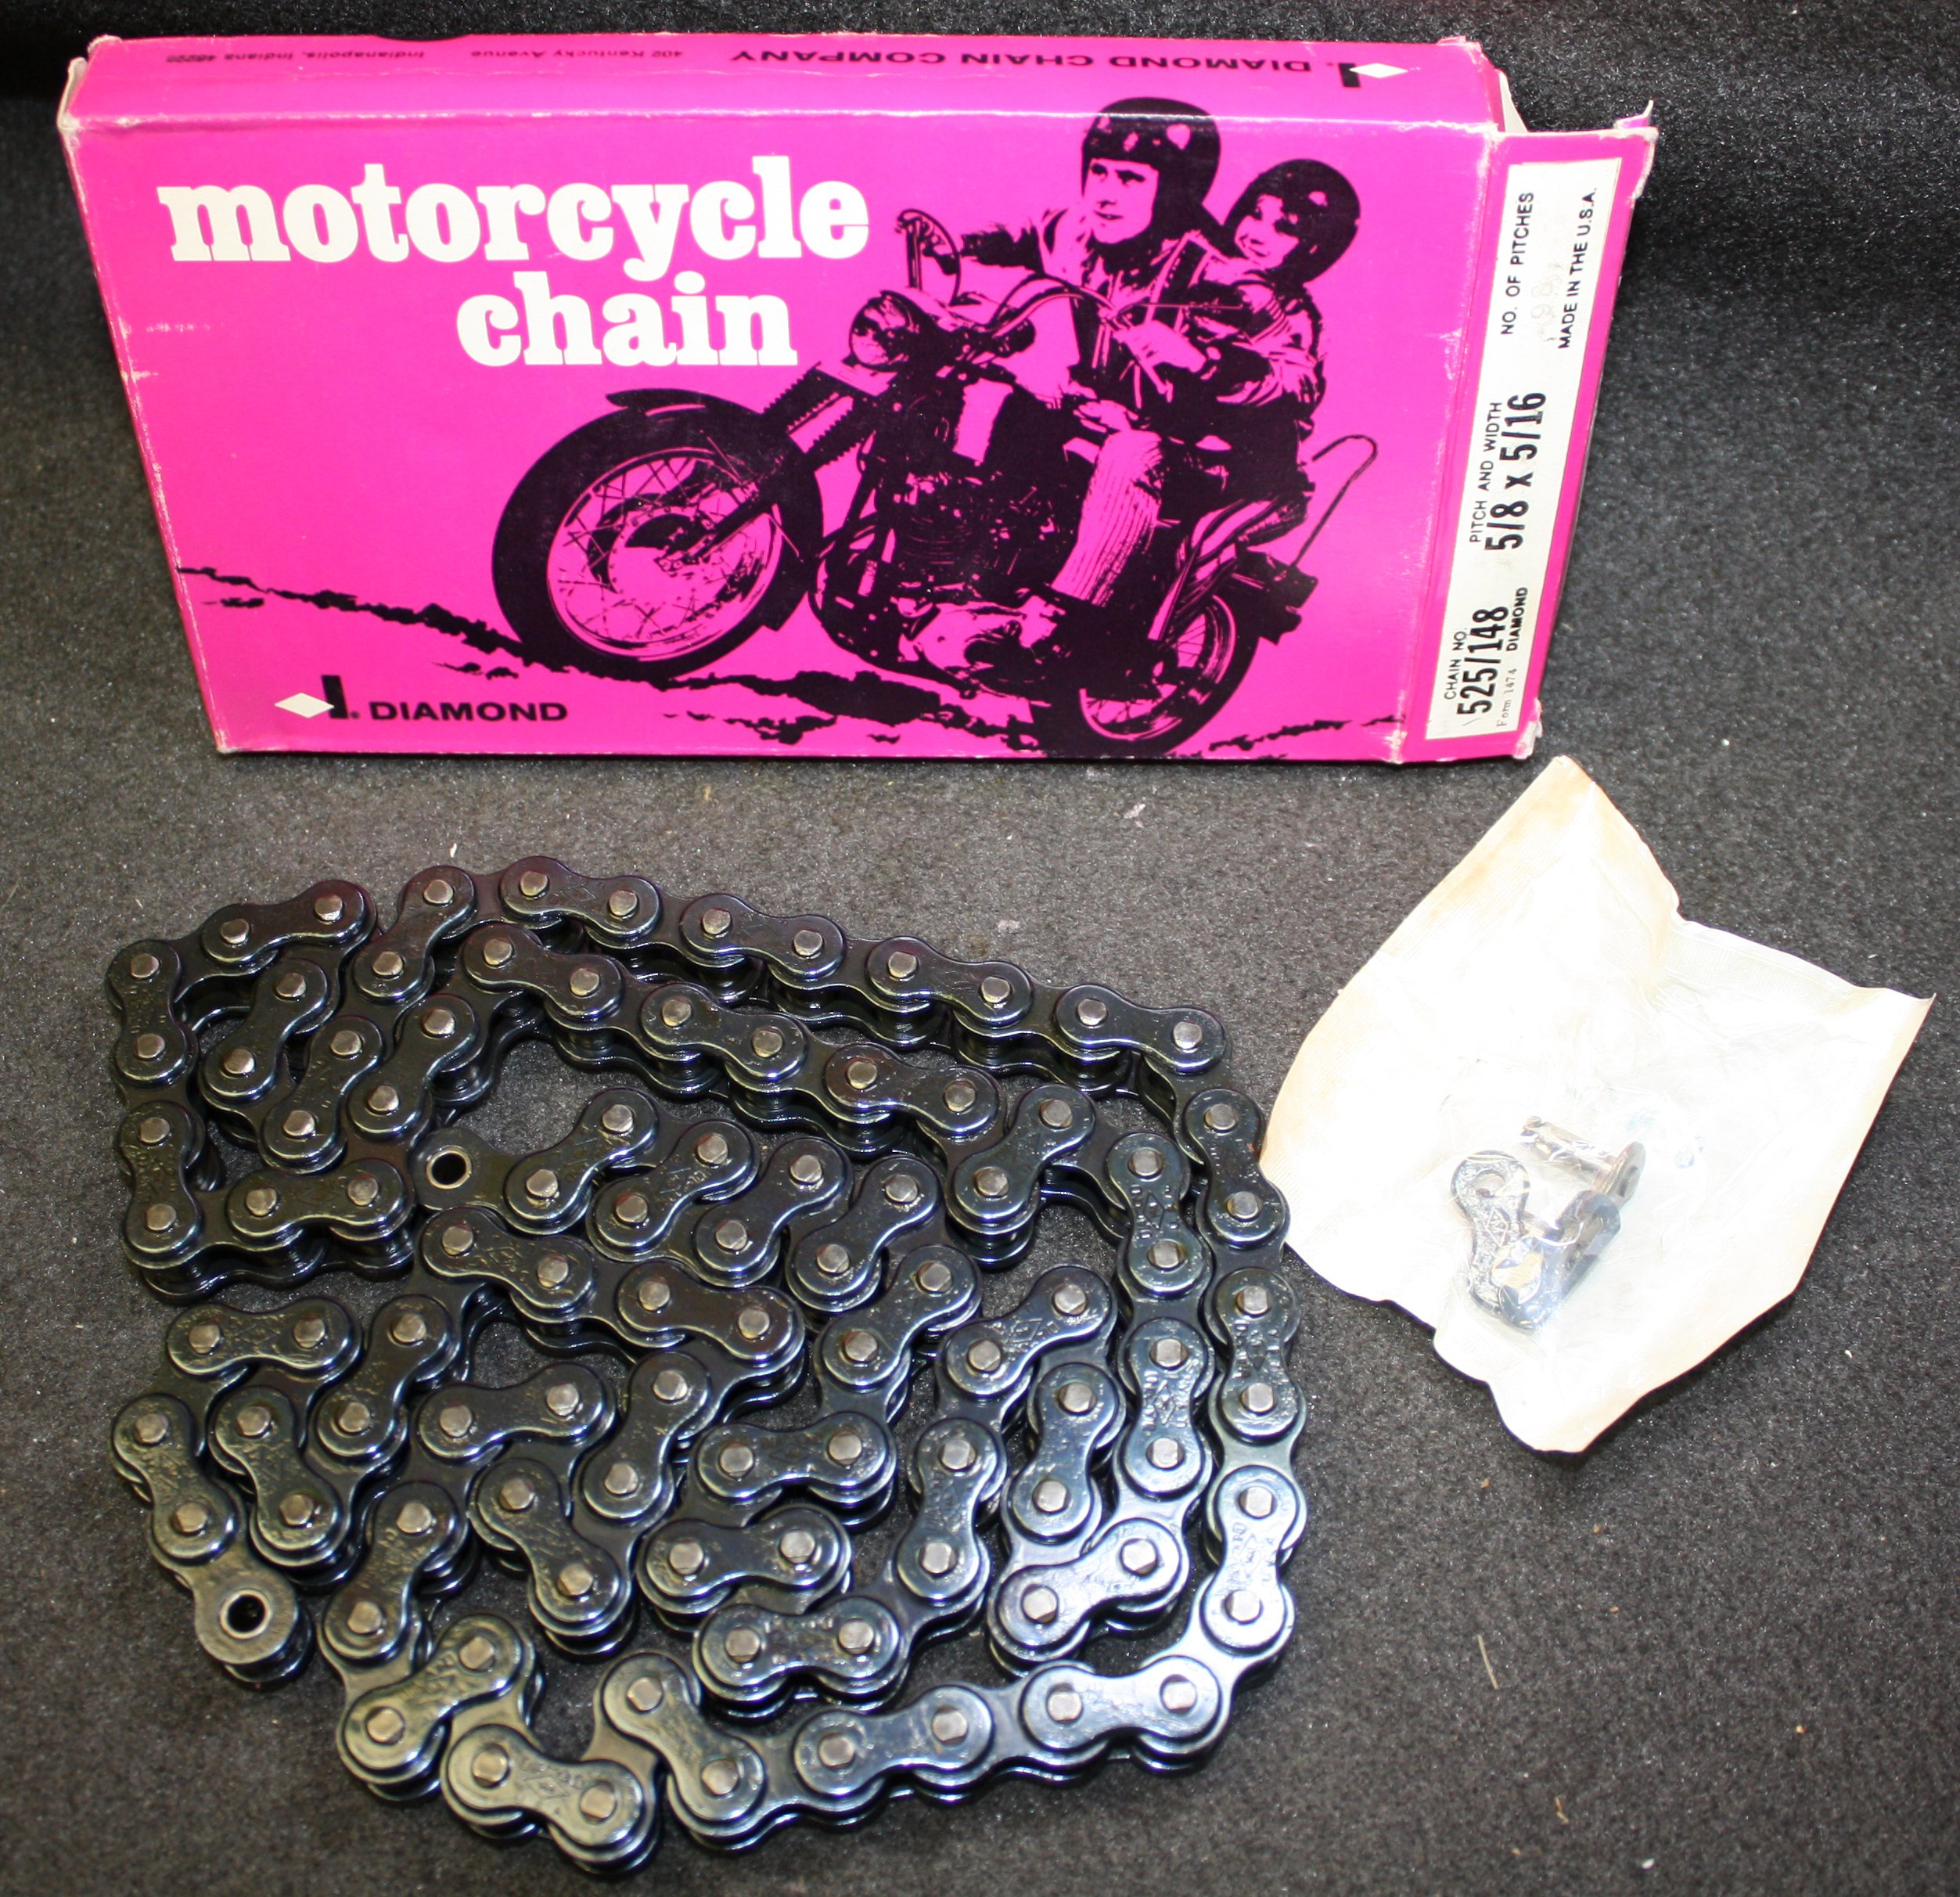 Diamond PowerSports Diamond USA #525 Motorcycle Roller Chain Replacement Harley Davidson 106 Links by Diamond PowerSports